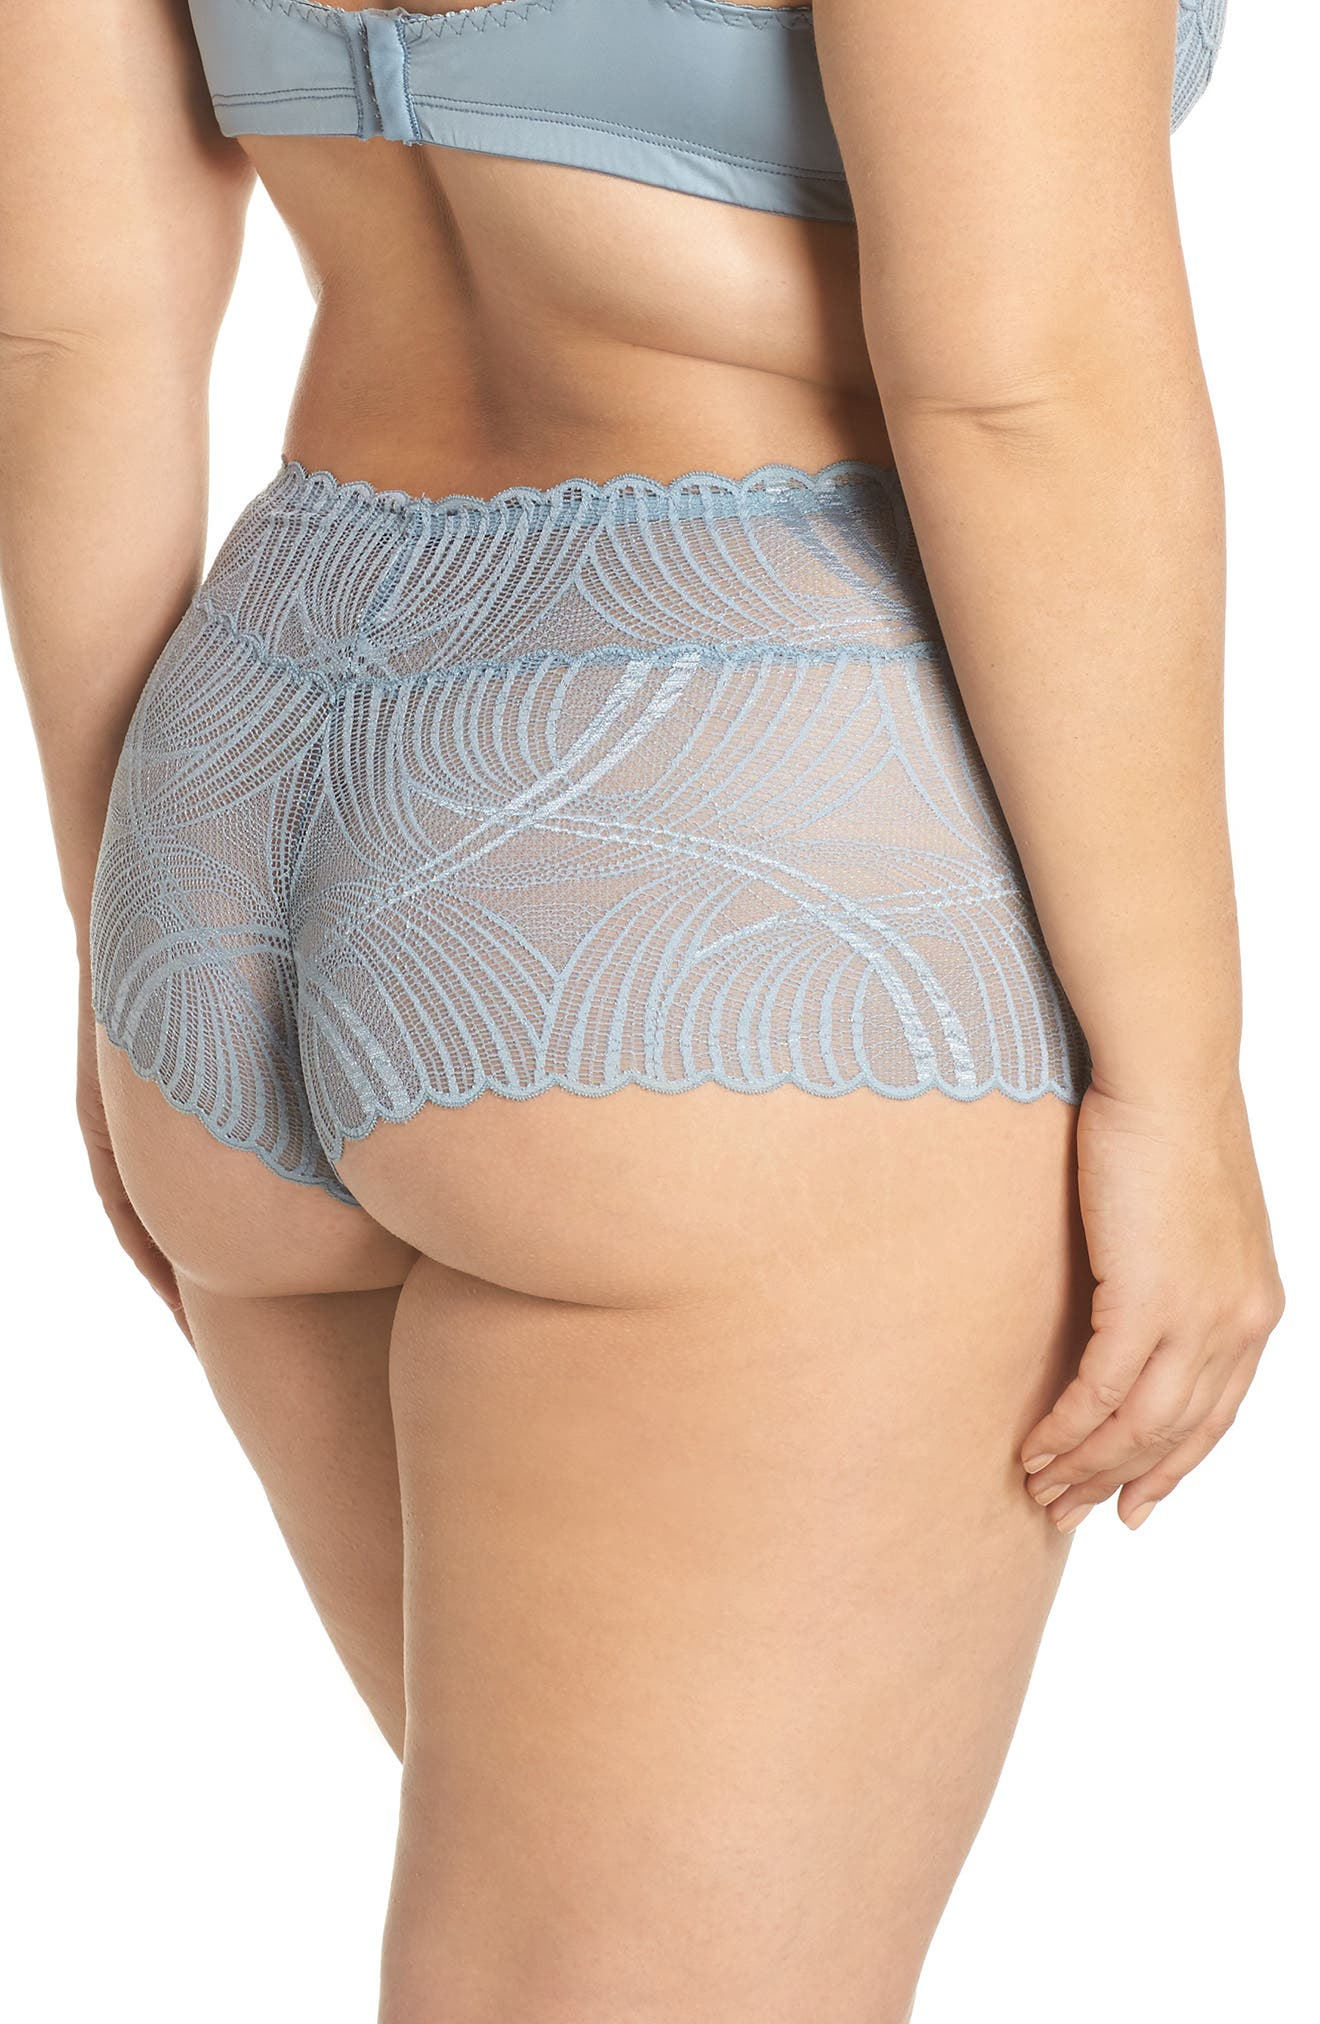 Alternate Image 2  - Cosabella Minoa Naughtie Open Gusset Boyshorts (Plus Size)